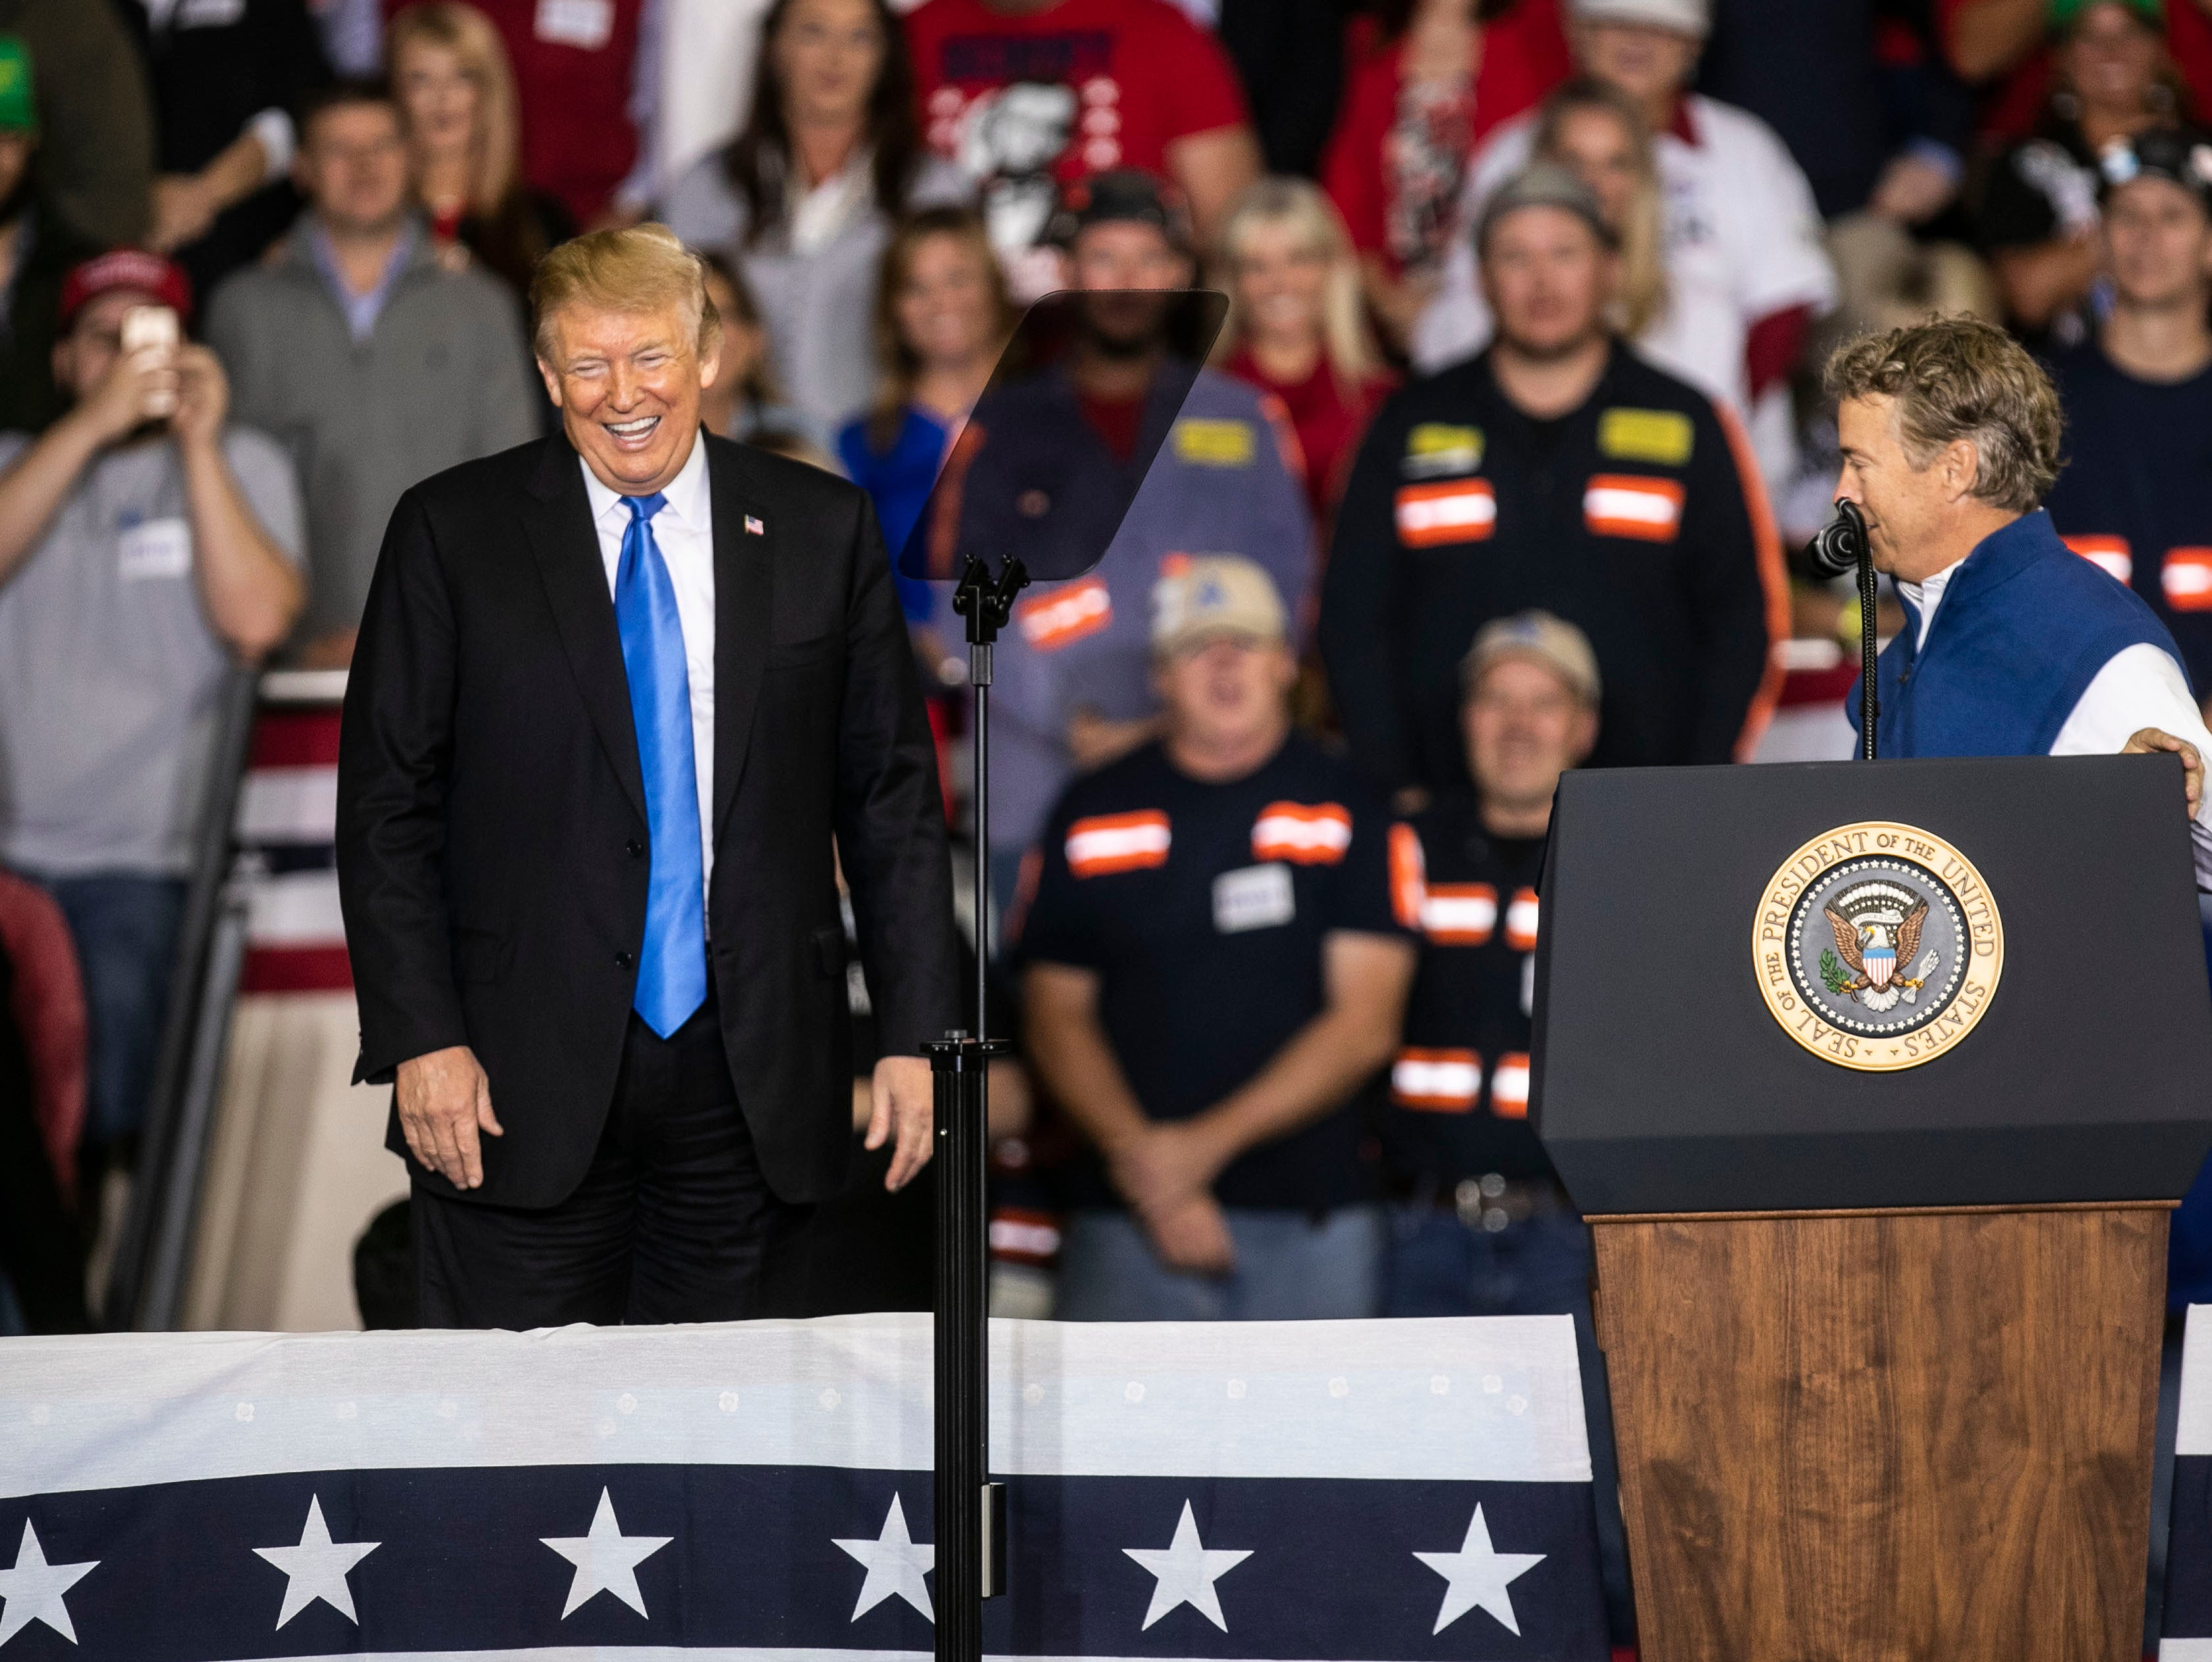 President Donald Trump shared the stage with Senator Rand Paul during the rally on the Eastern Kentucky University campus Saturday night.